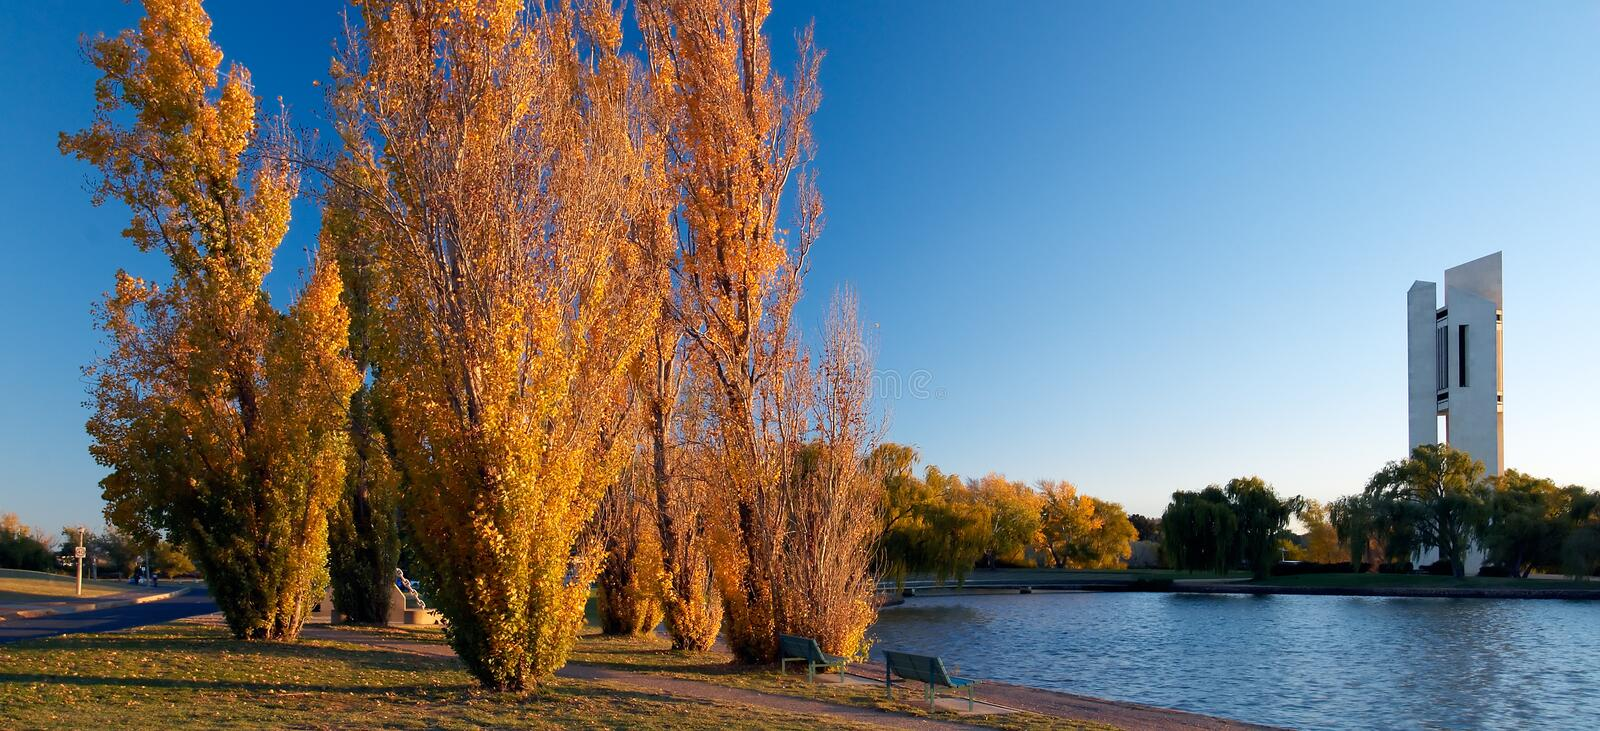 Canberra - Lake Burley Griffen - National Carillon. Lake Burley Griffen is an artificial lake in the centre of Canberra, Australia's federal capital city. The royalty free stock photo